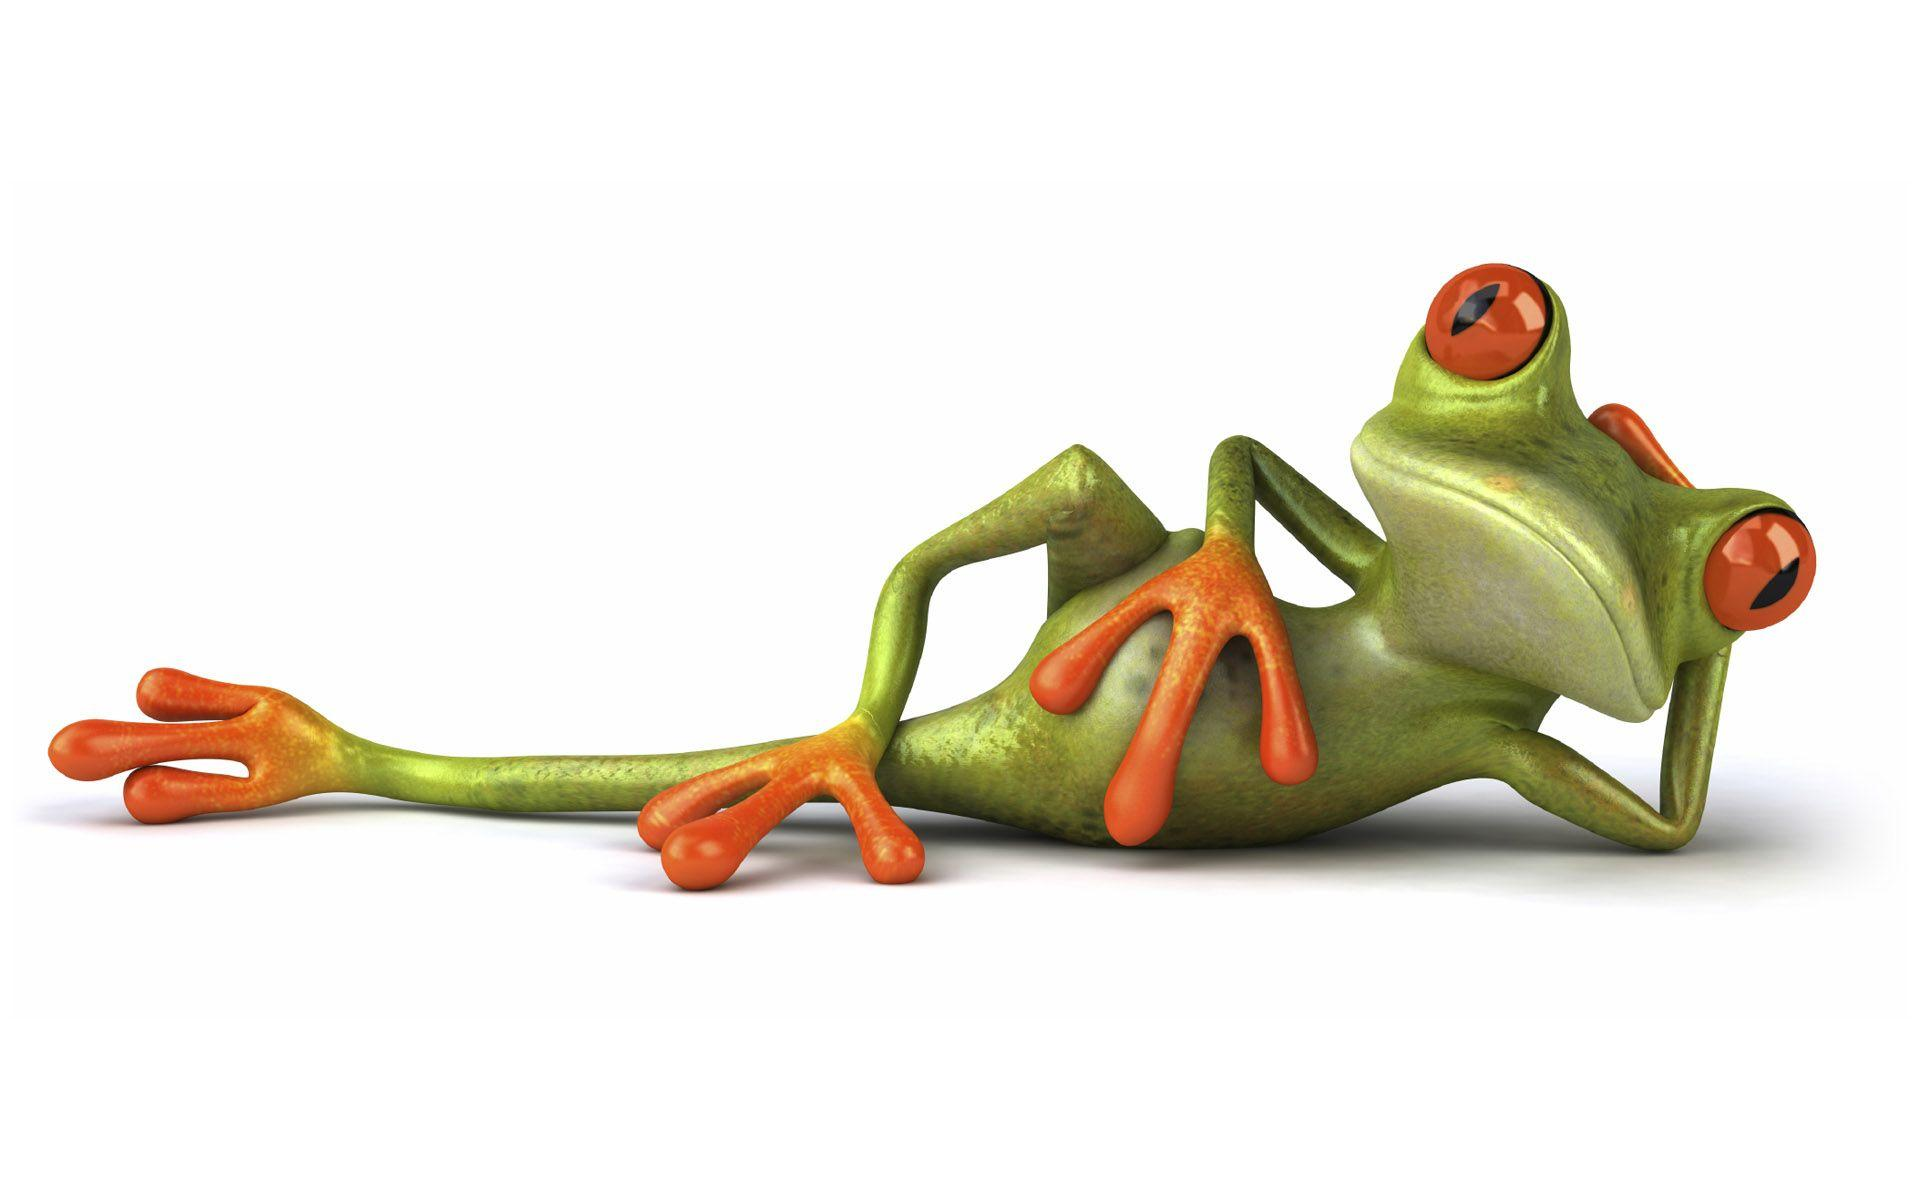 D Cartoons Frog Free 193670 Wallpapers wallpapers